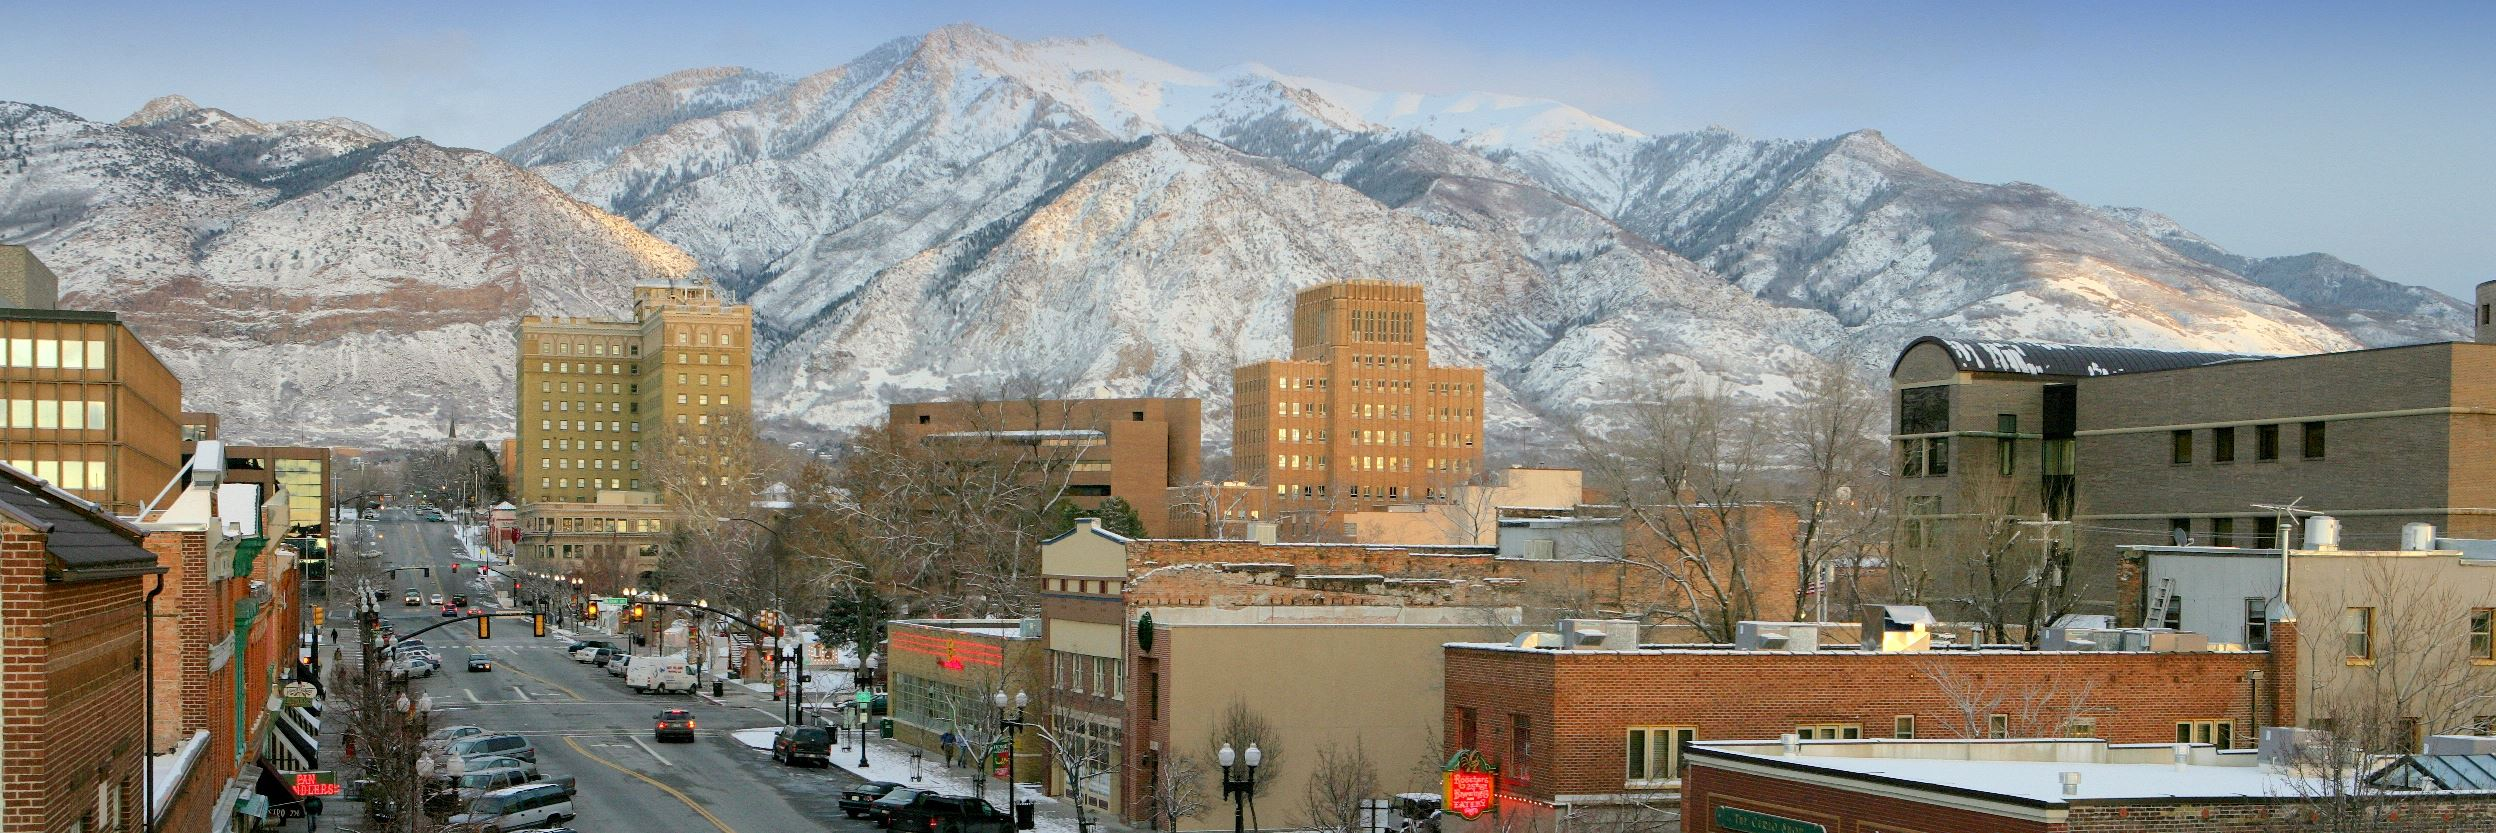 A street view of Ogden City with mountains in the background